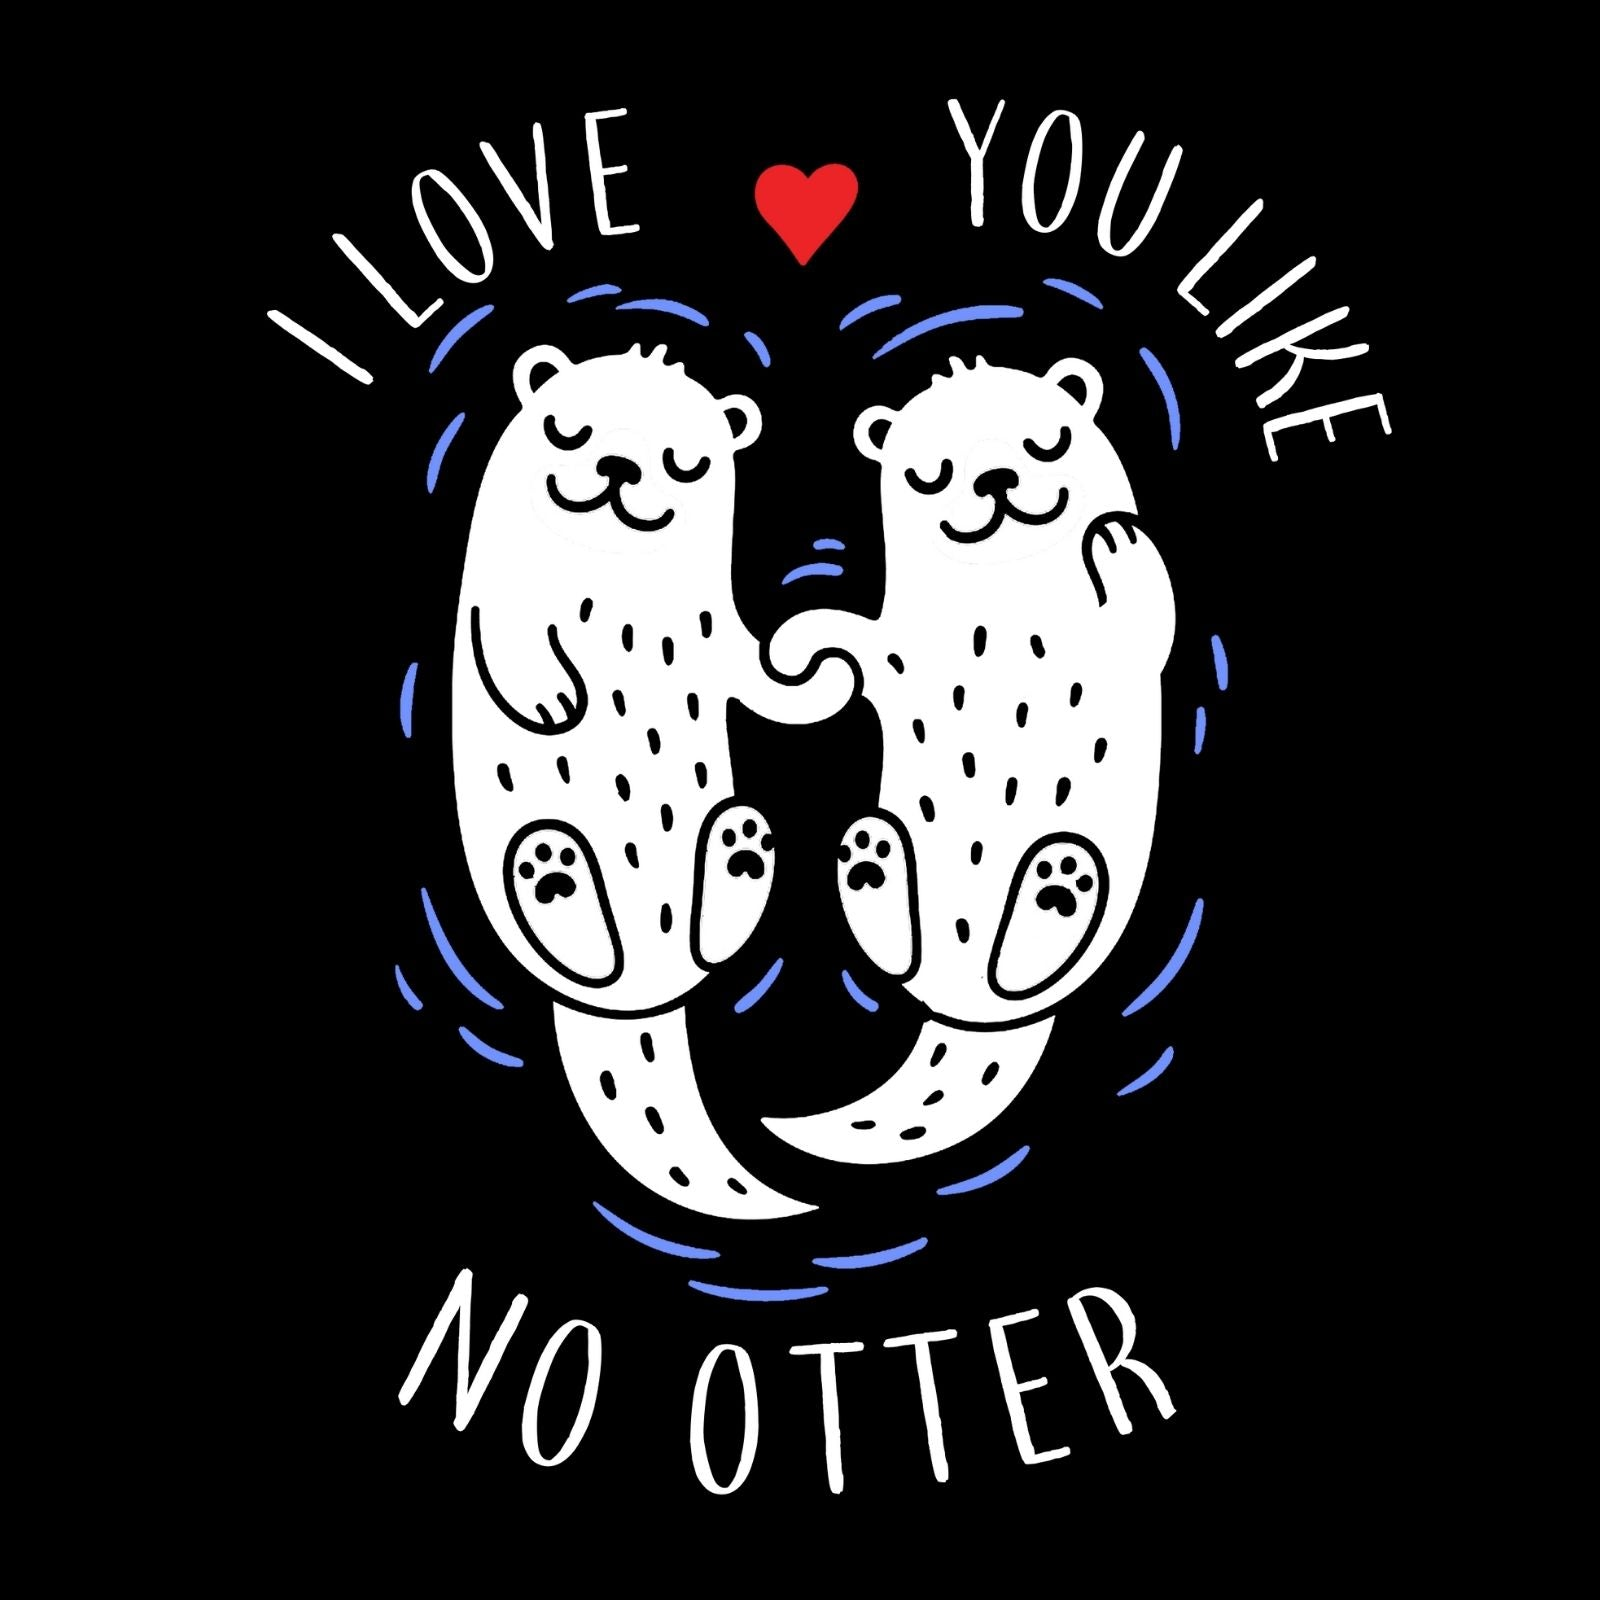 I Love You Like No Otter - Bastard Graphics